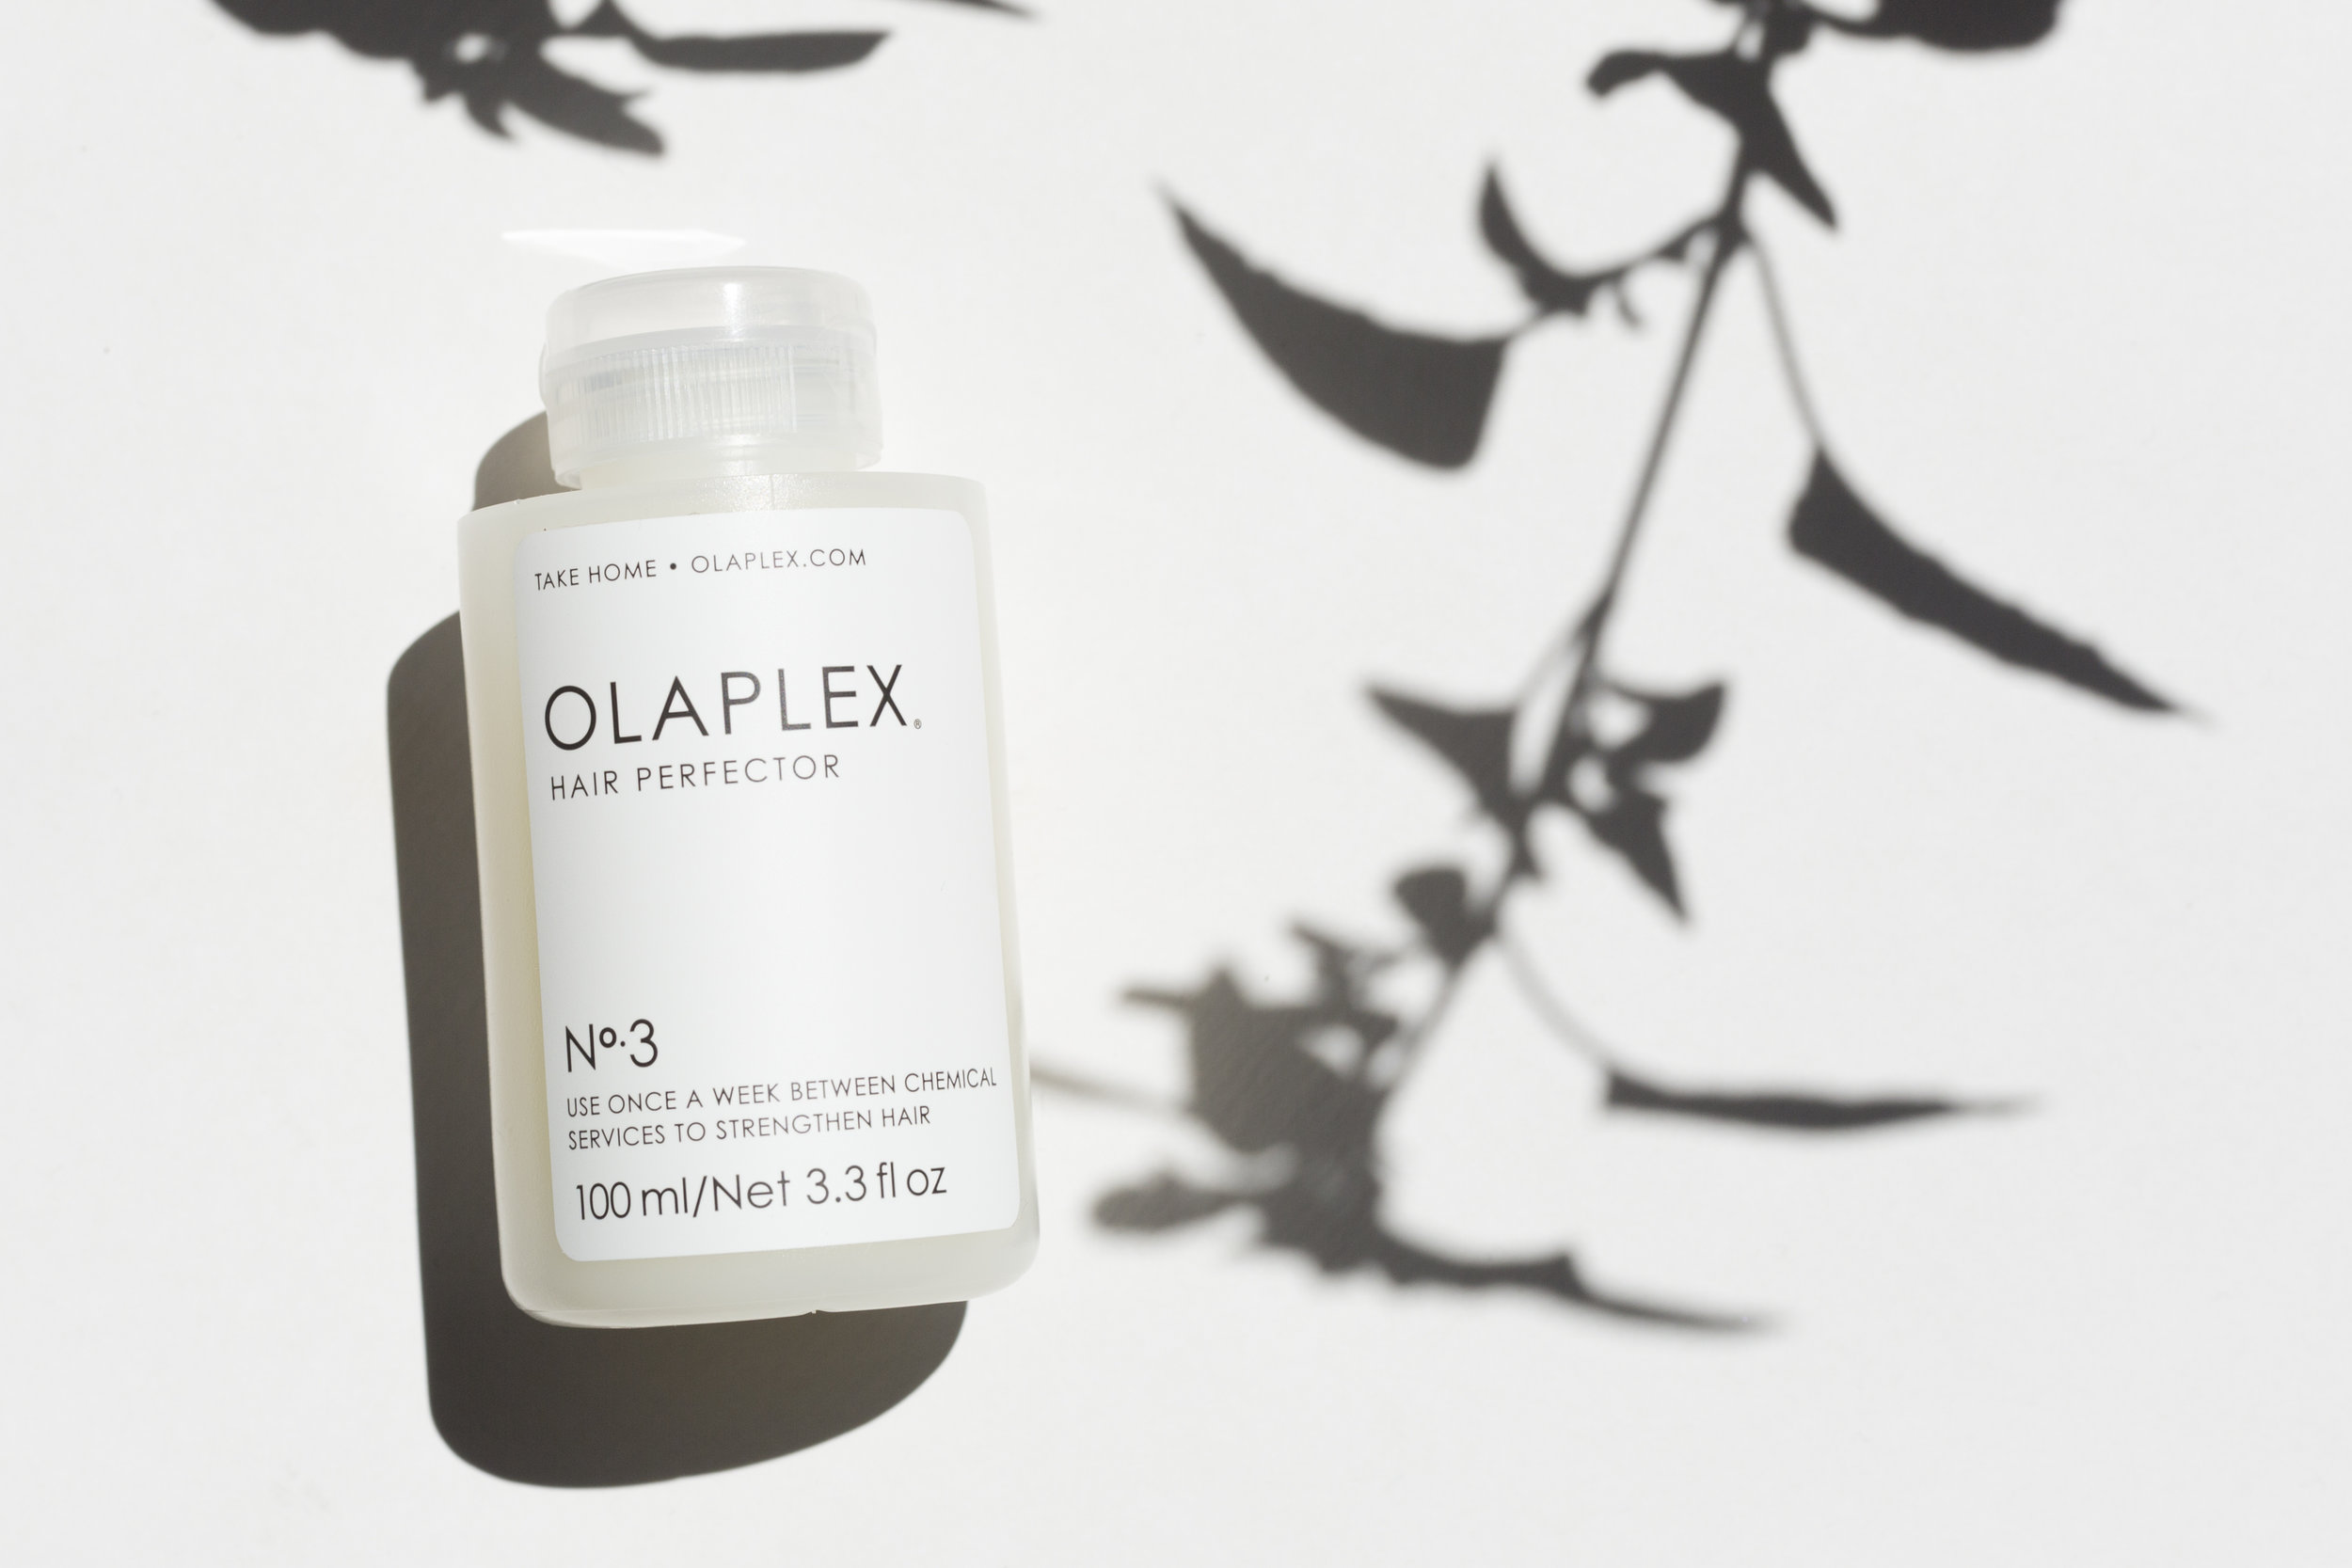 HAIR PERFECTOR NO.3 - Olaplex